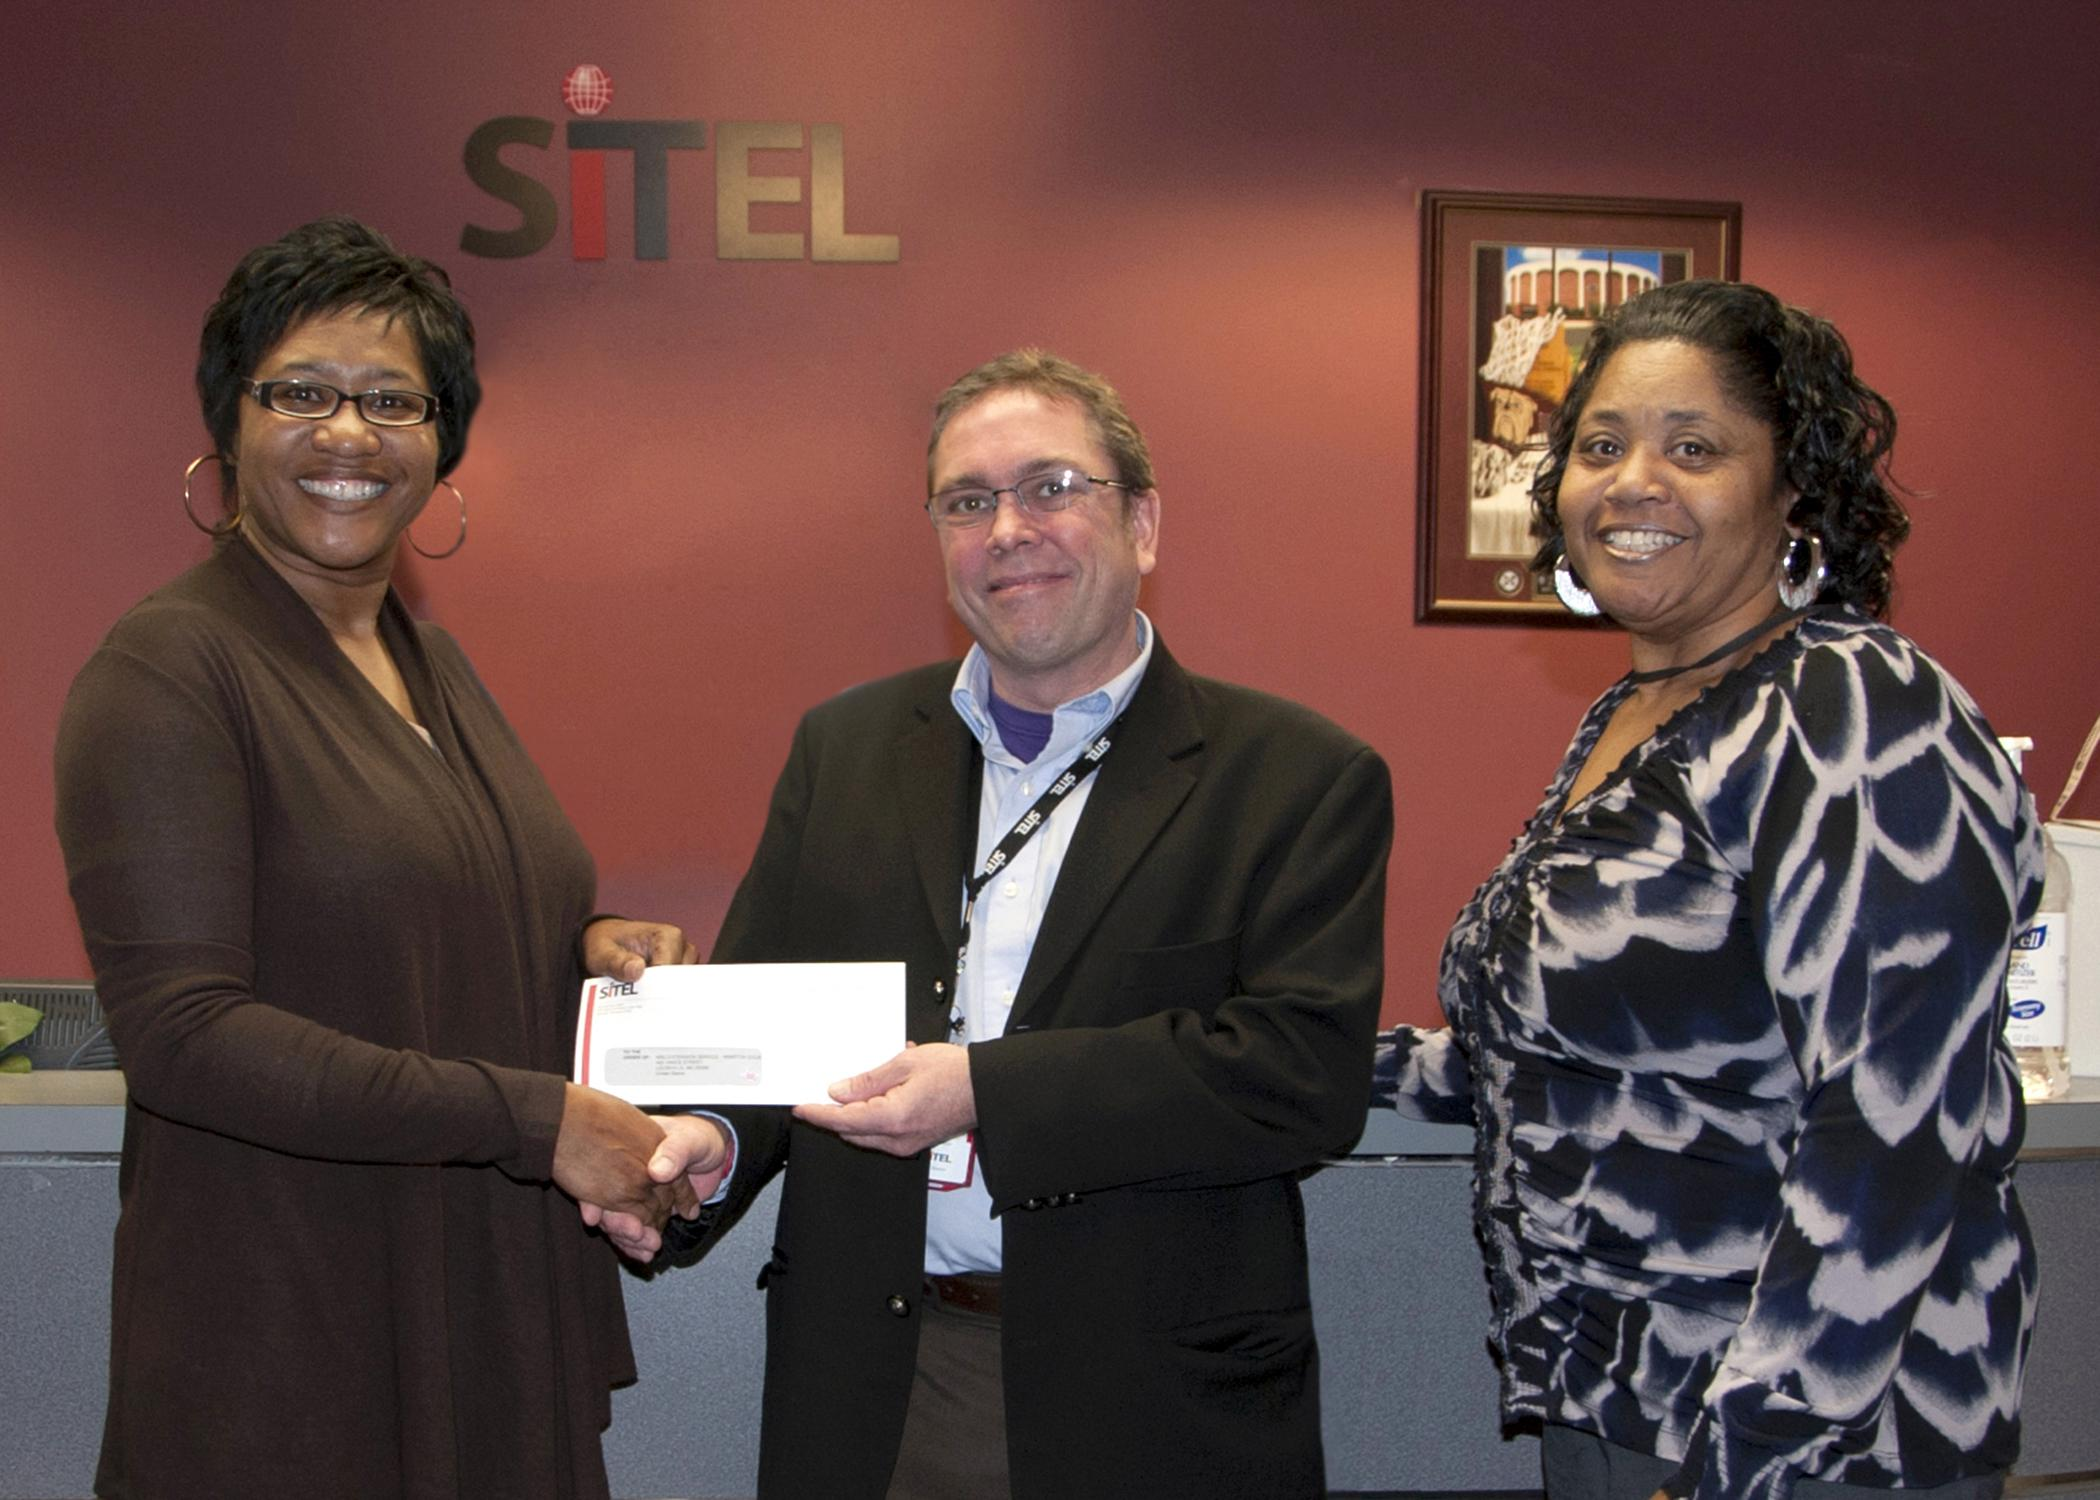 Sandra Jackson, left, a Mississippi State University Extension Service program associate, accepts a check from Dave Billington, Sitel Starkville site director, on behalf of Sitel's employee recognition program. Stella Jackson, right, Sitel's 2012 International Customer Management Institute Supervisor of the Year, chose to support the Winston County 4-H Youth Development program through Sitel's recognition program because of the positive impact it has on local youth. (Photo by MSU Ag Communications/Kat Lawre